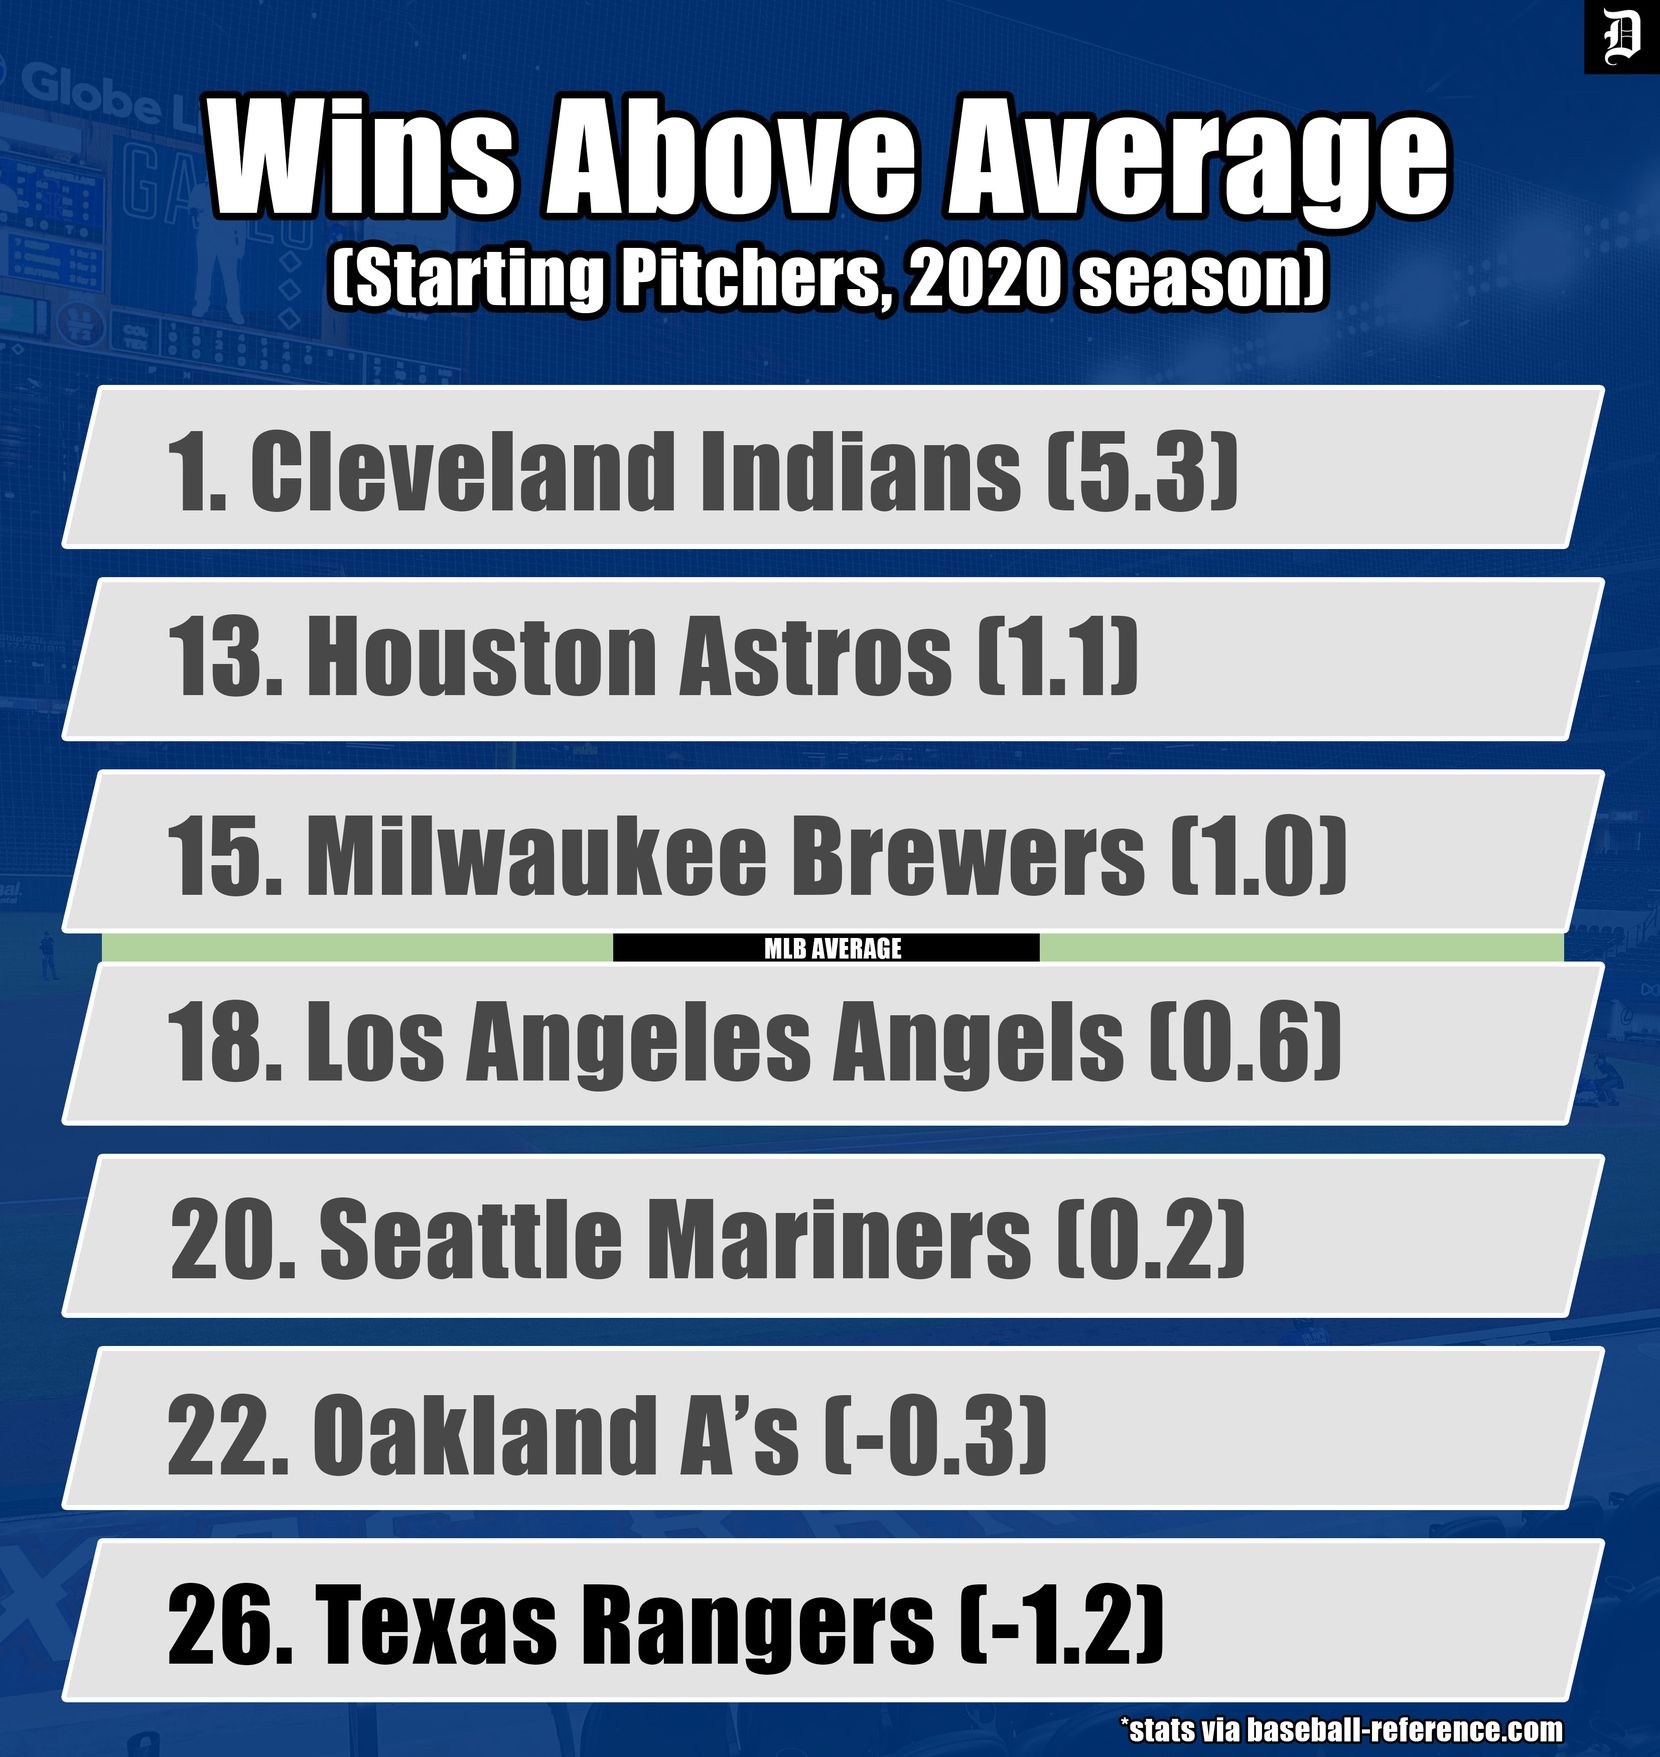 A look at where the Rangers' starting pitchers ranked in wins above average last season.